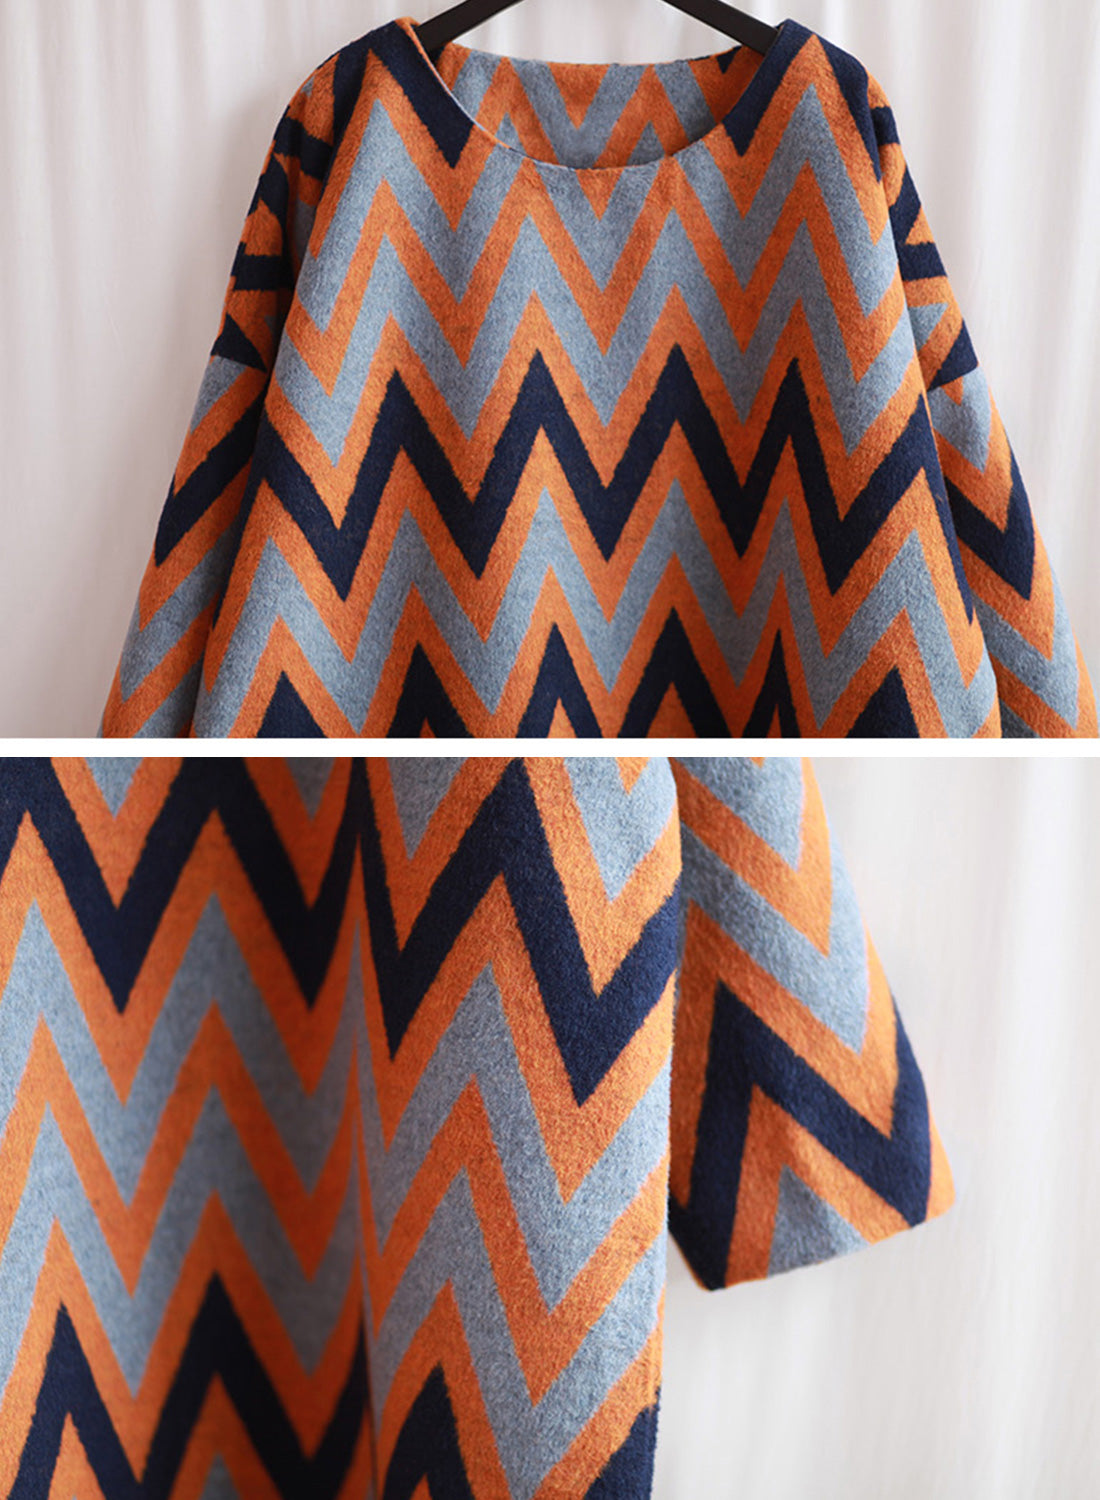 Seein' Zig-Zag Stripes Woolen Maxi Dress Details 2